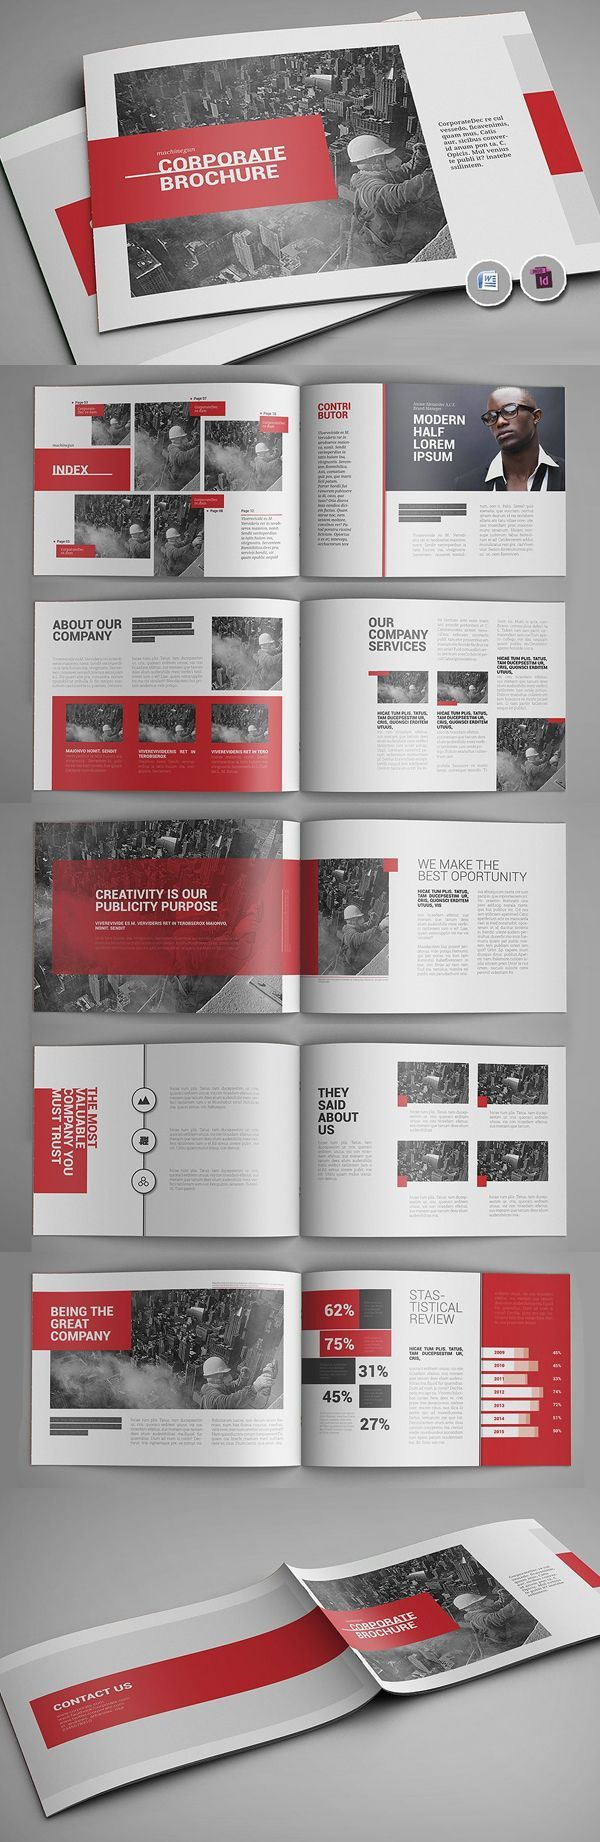 Image Result For Page Brochure Inspiration Photo Publications - Four page brochure template